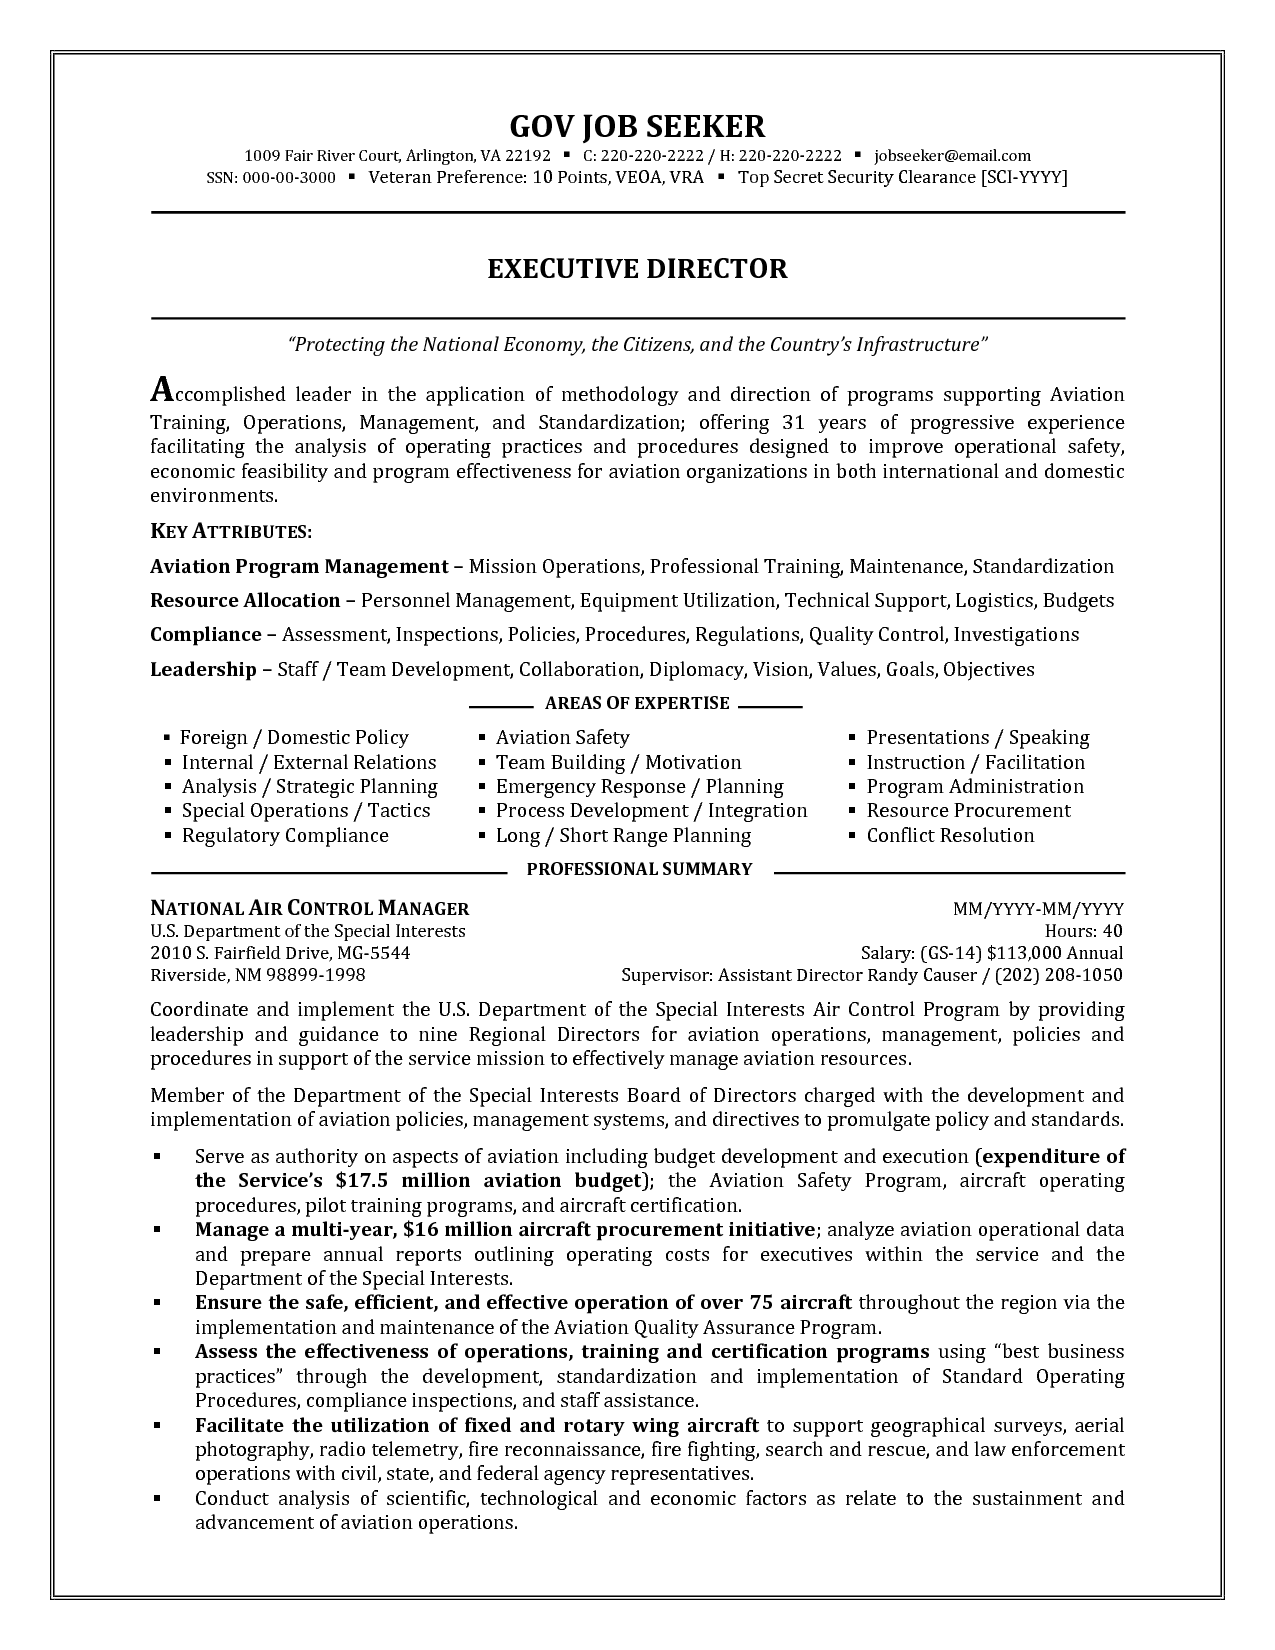 resume sample for music production job and film template builder. Resume Example. Resume CV Cover Letter